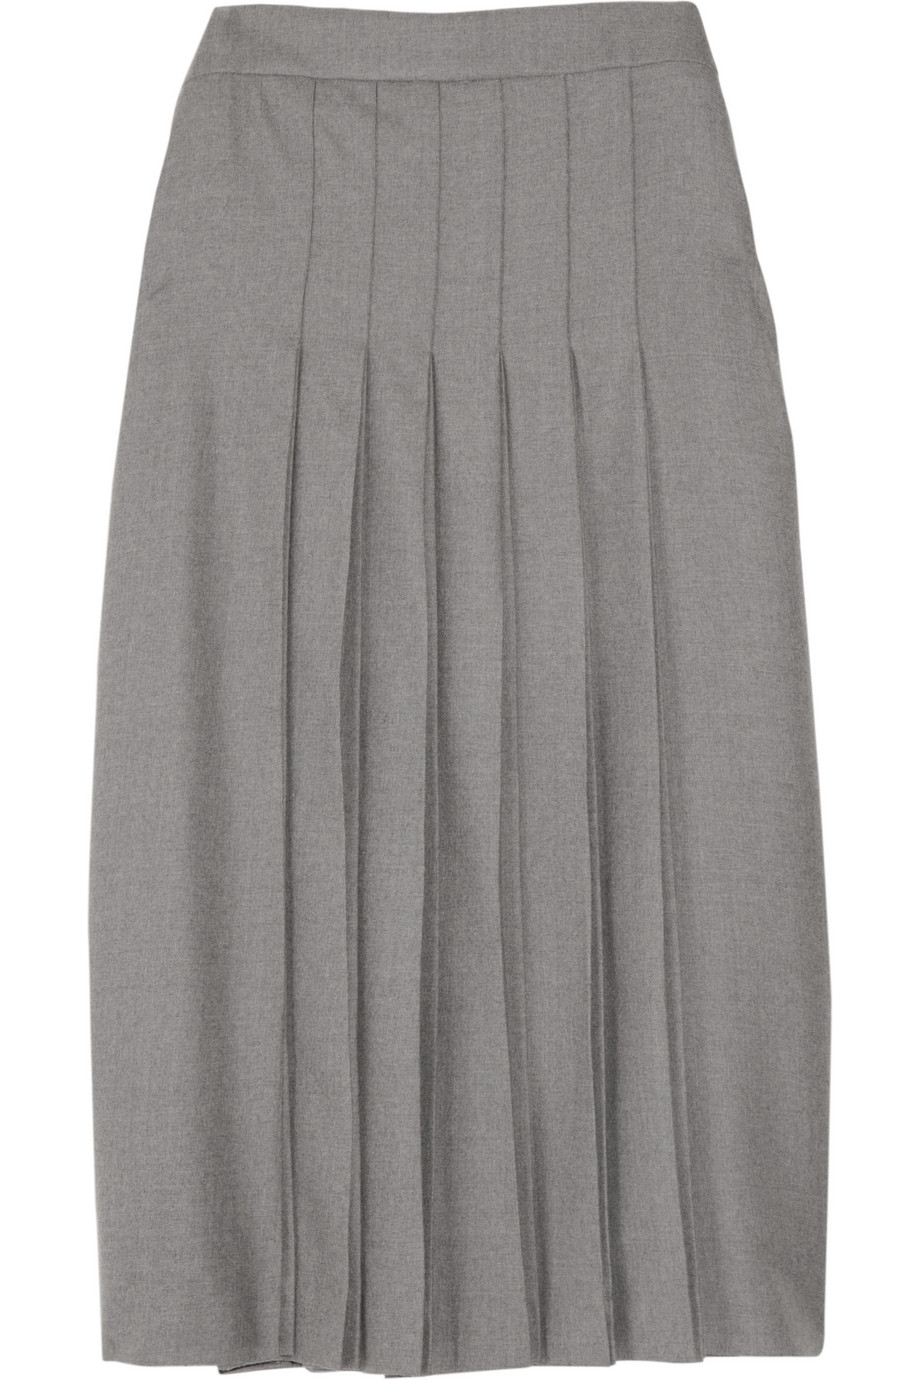 Chlo 233 Pleated Wool Flannel Skirt In Gray Lyst